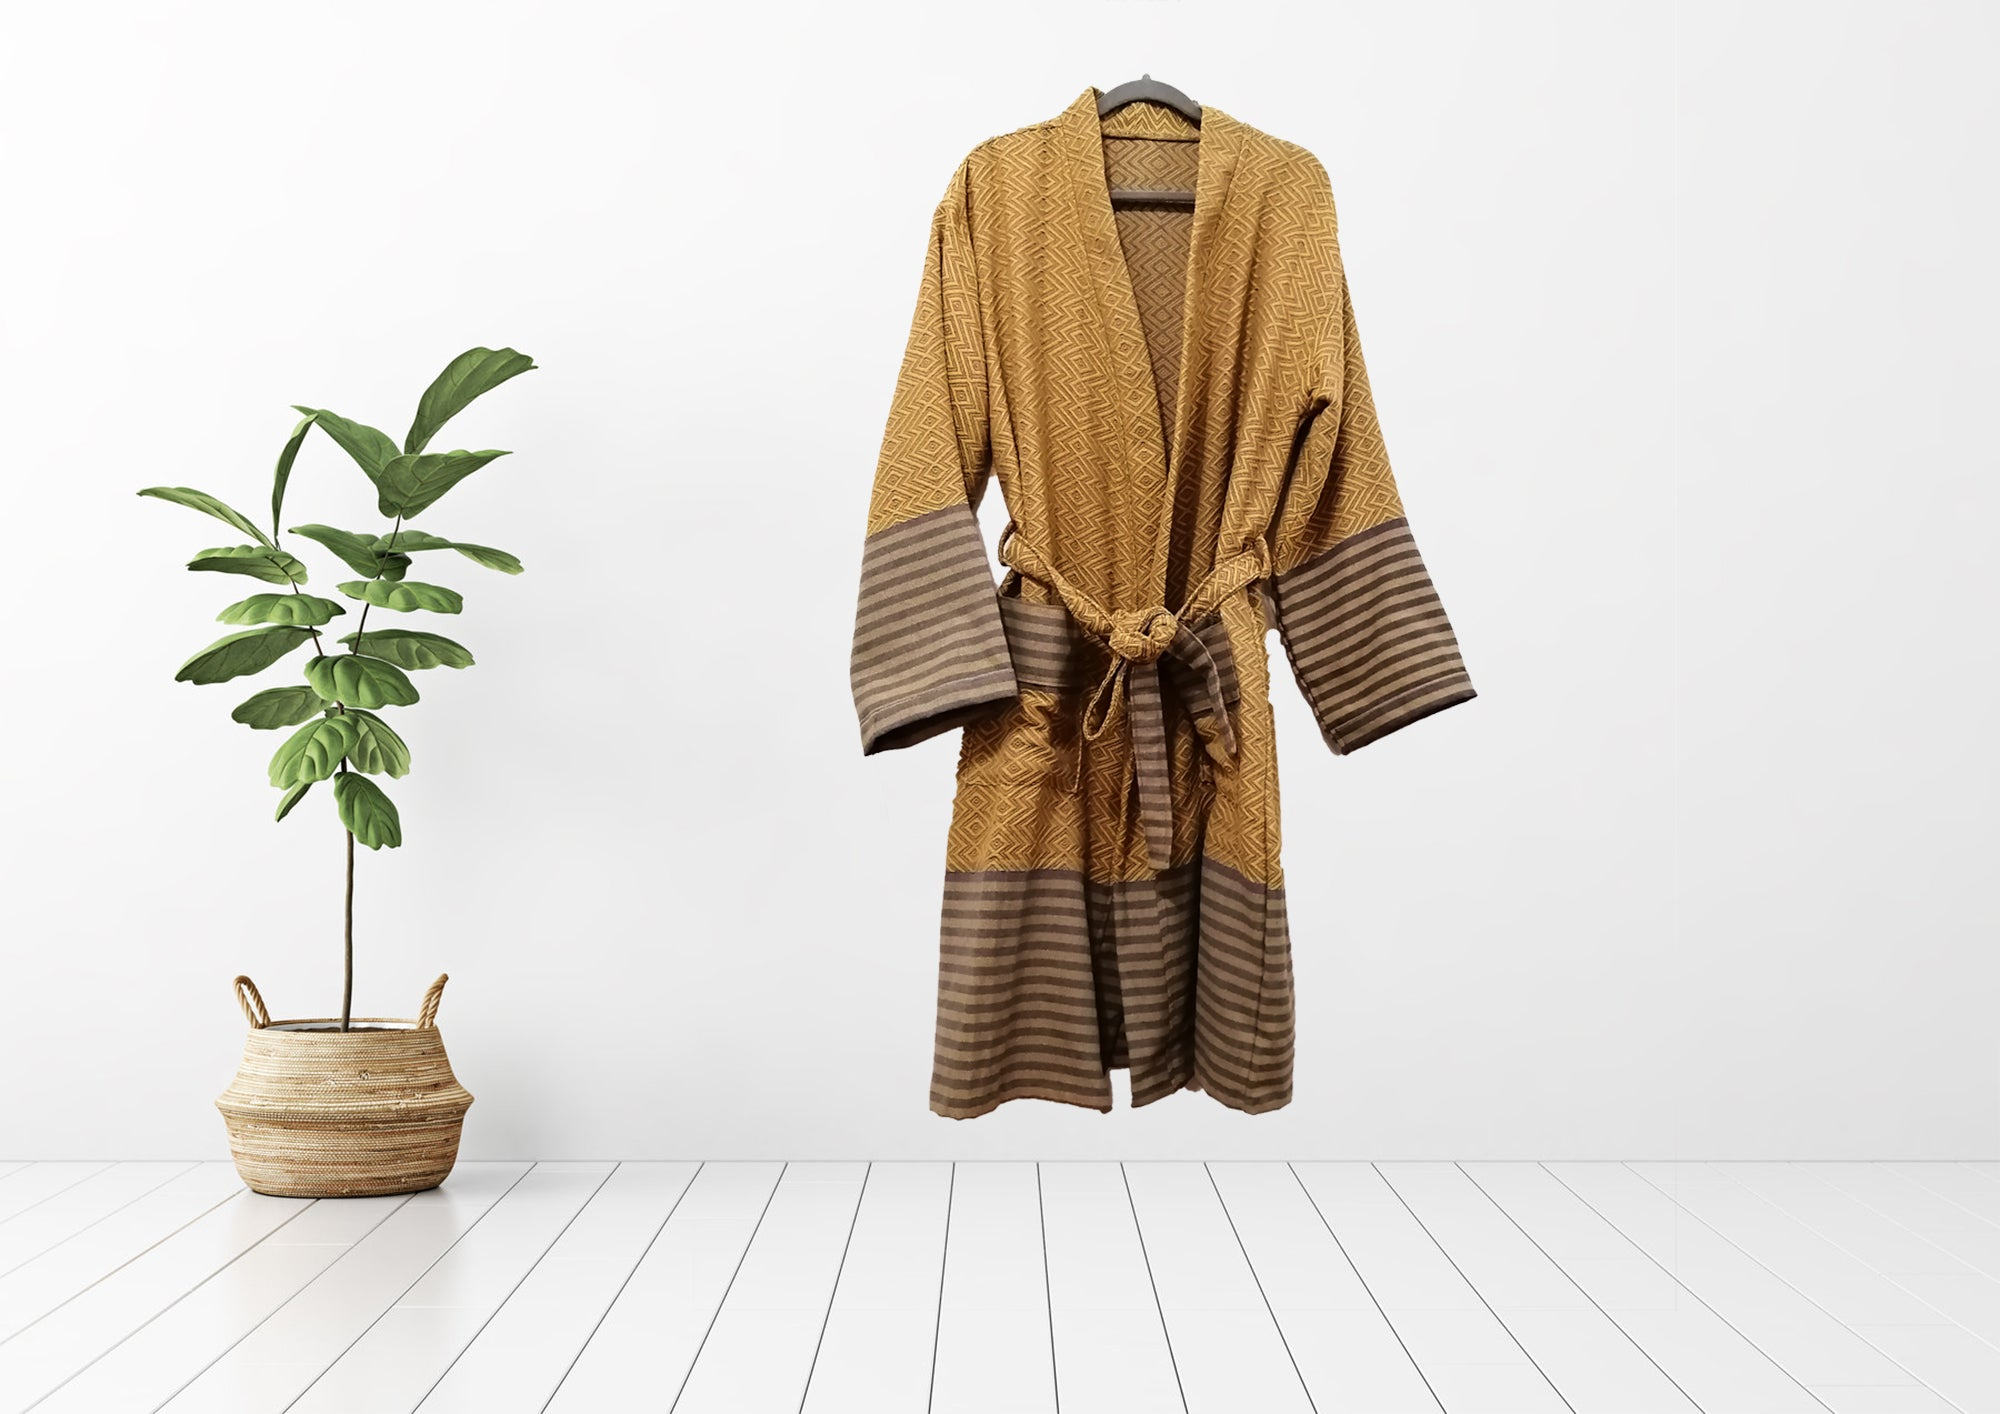 Turkish Towel bathrobe sultan gold made with the finest quality Turkish cotton, super soft, lightweight Turkish towel robes, Perfect for drying off and staying warm, superior absorbency.it is with arrow pattern.